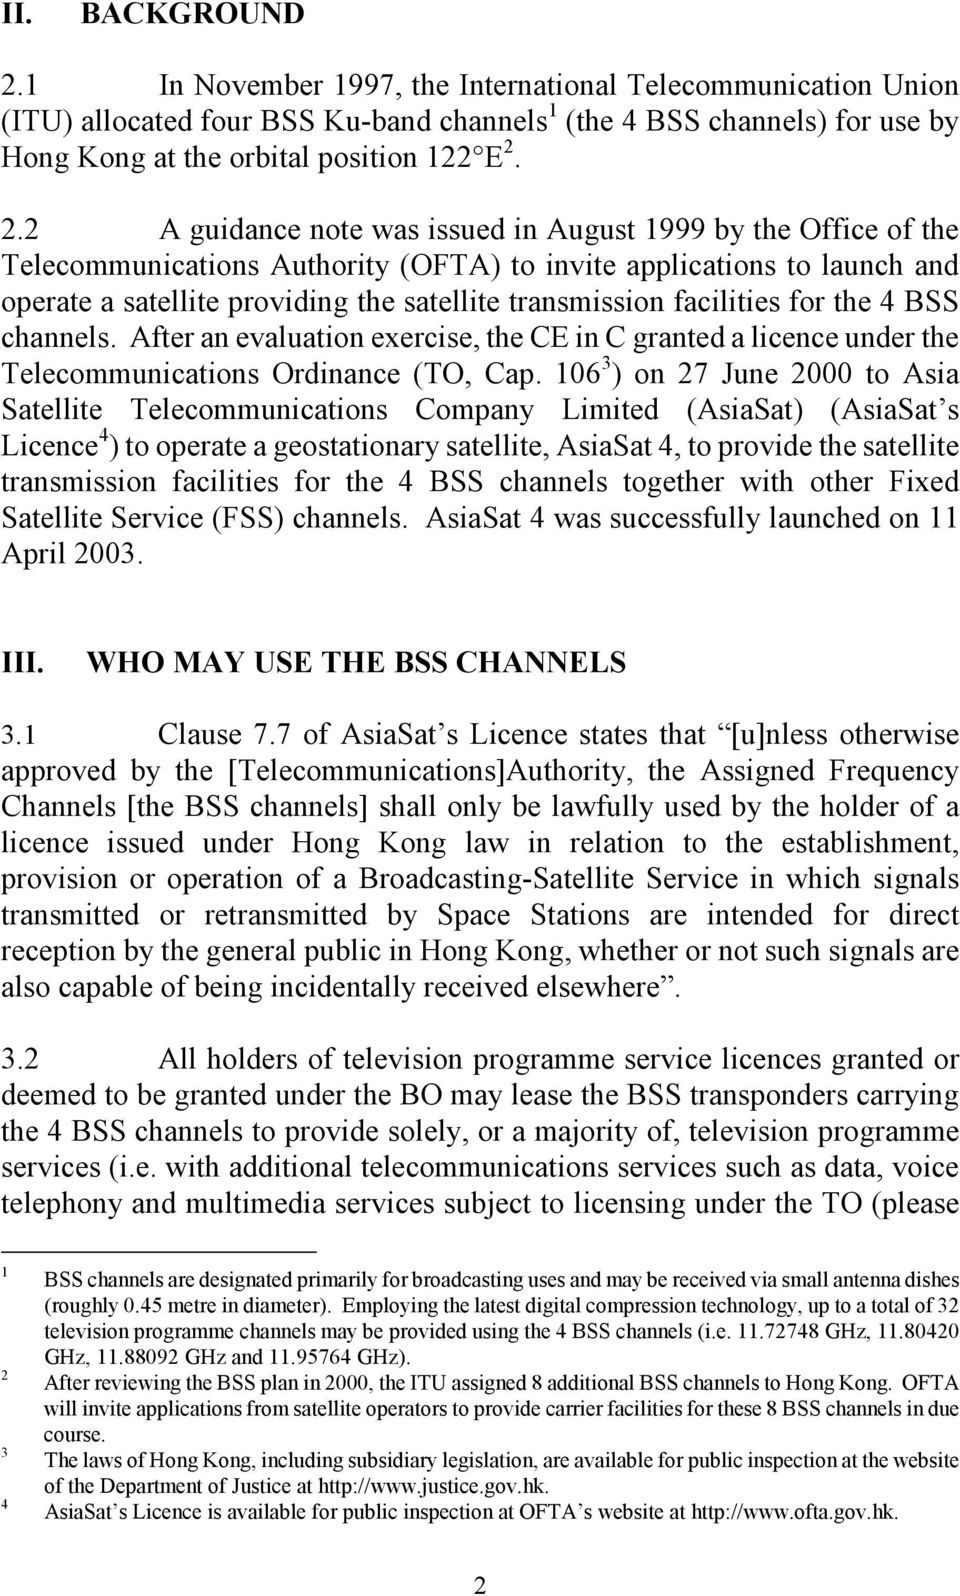 2.2 A guidance note was issued in August 1999 by the Office of the Telecommunications Authority (OFTA) to invite applications to launch and operate a satellite providing the satellite transmission